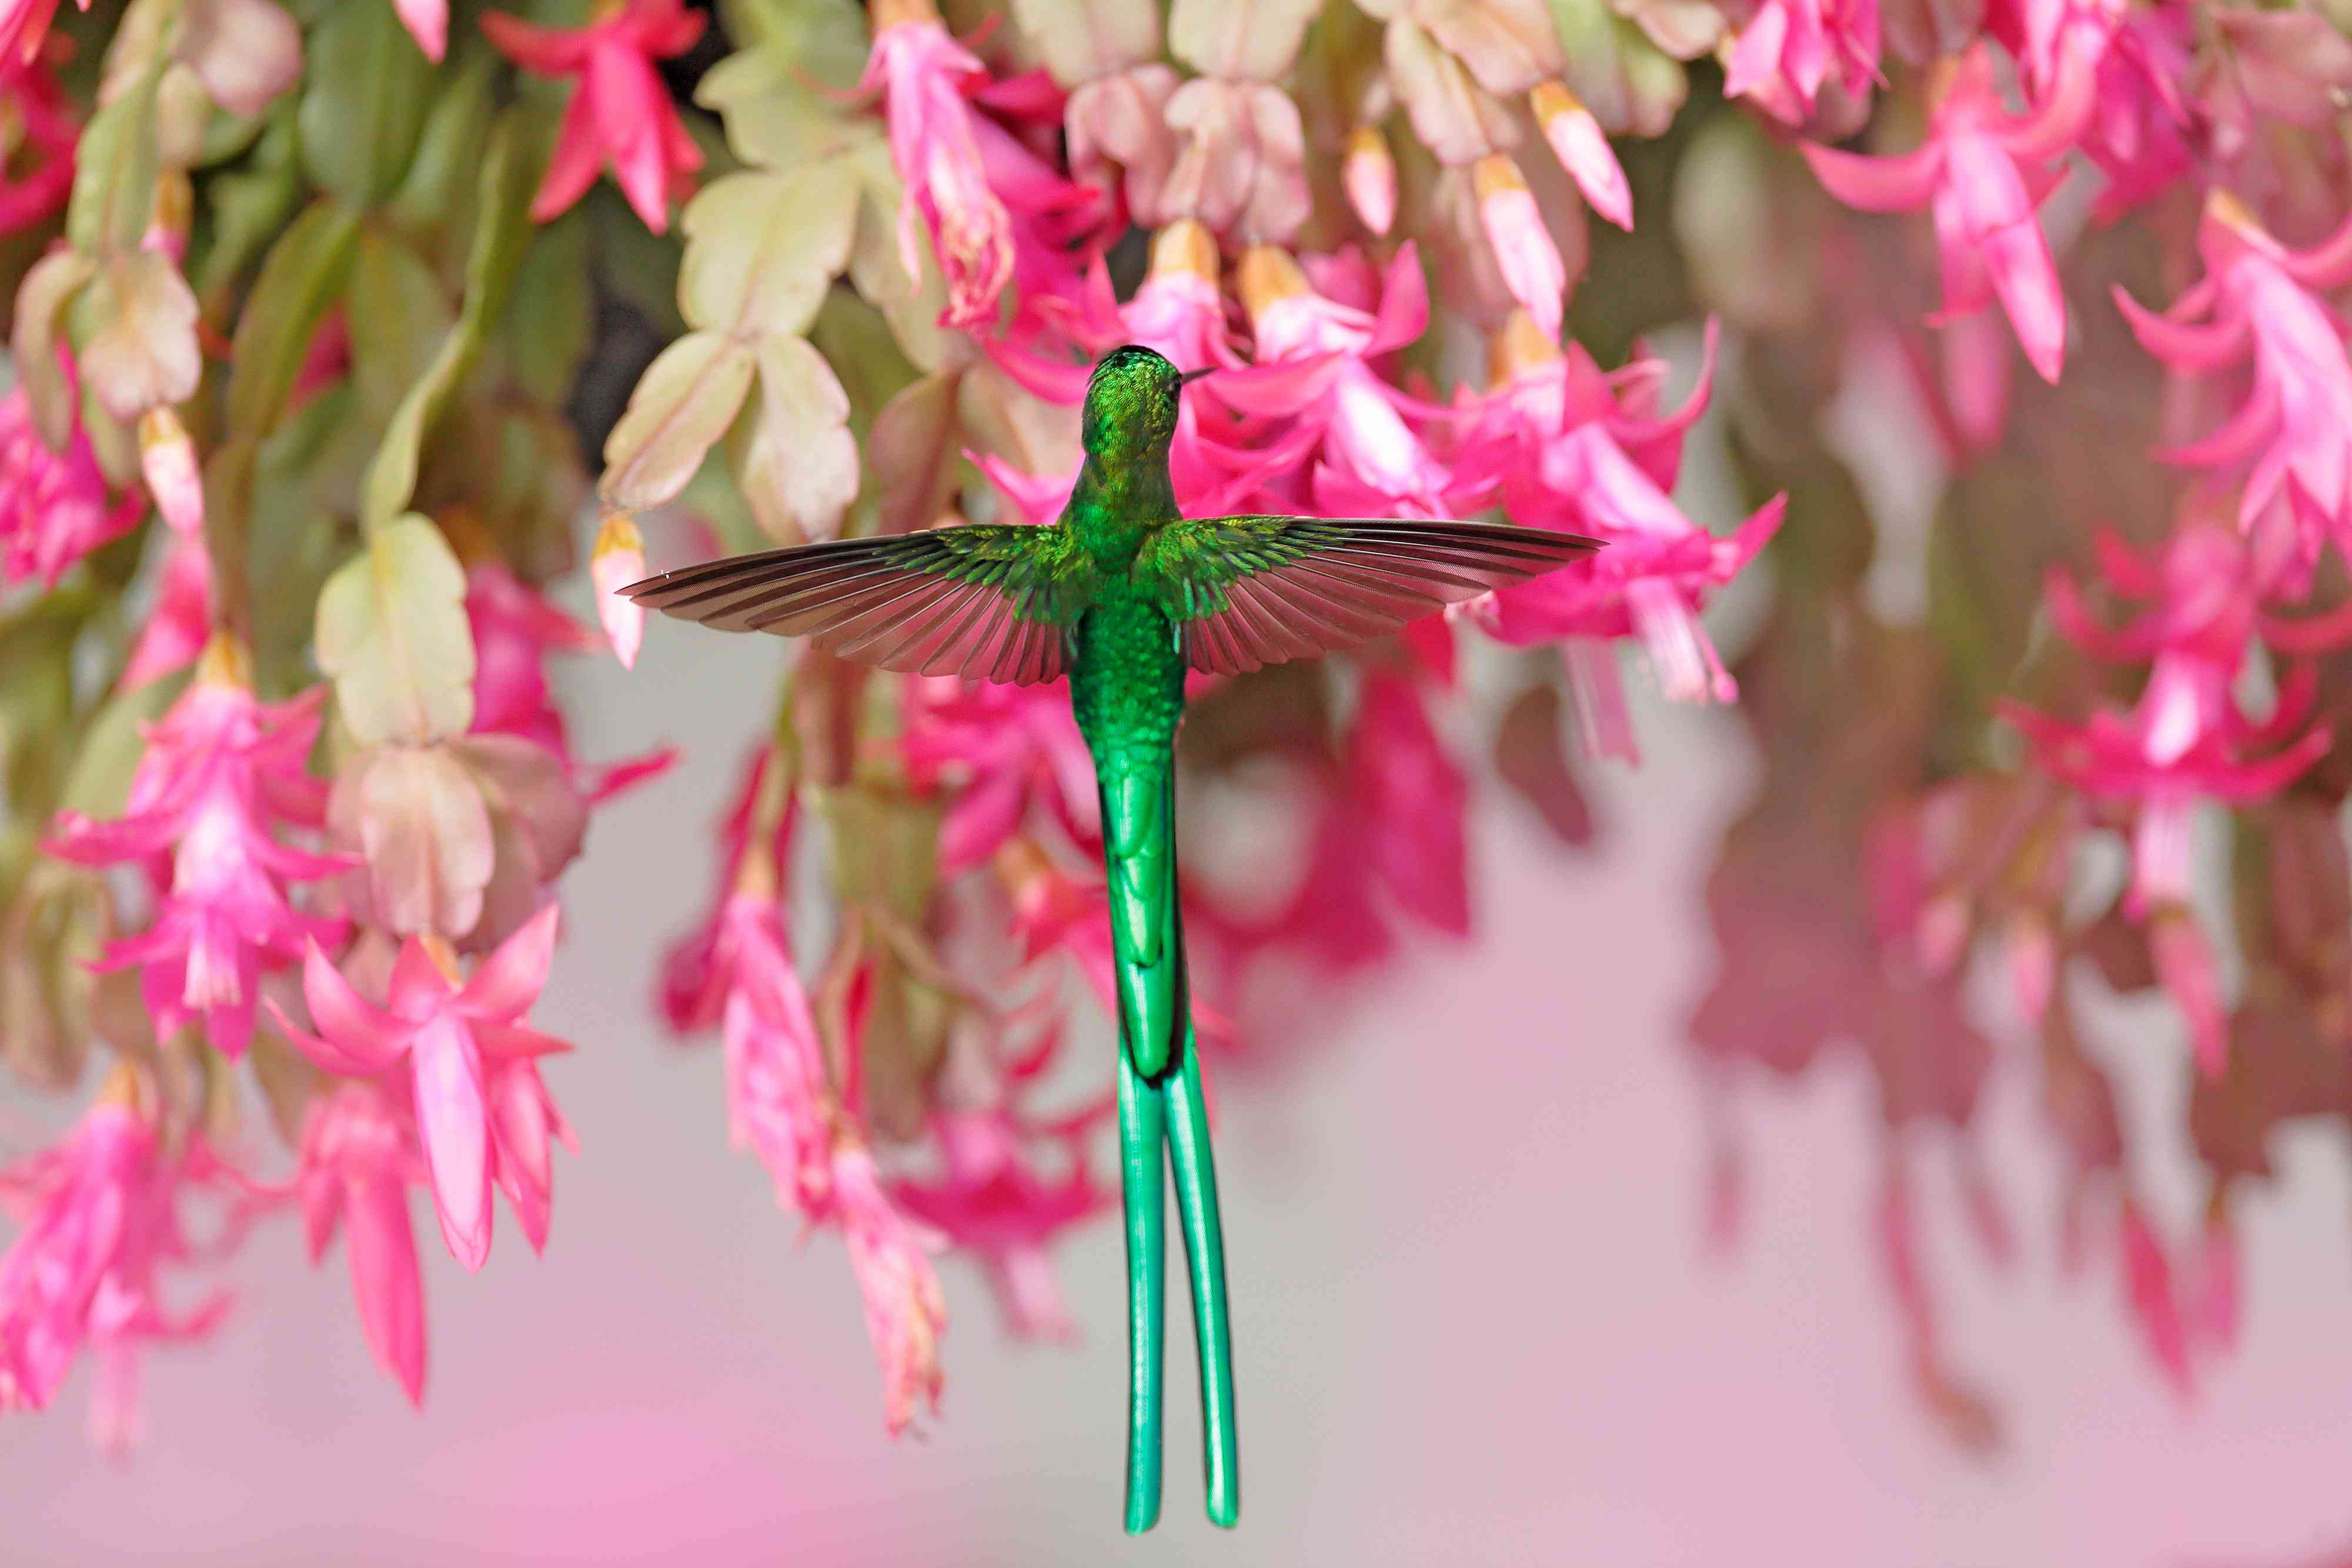 Back of a long-tailed sylph sucking nectar from pink flowers